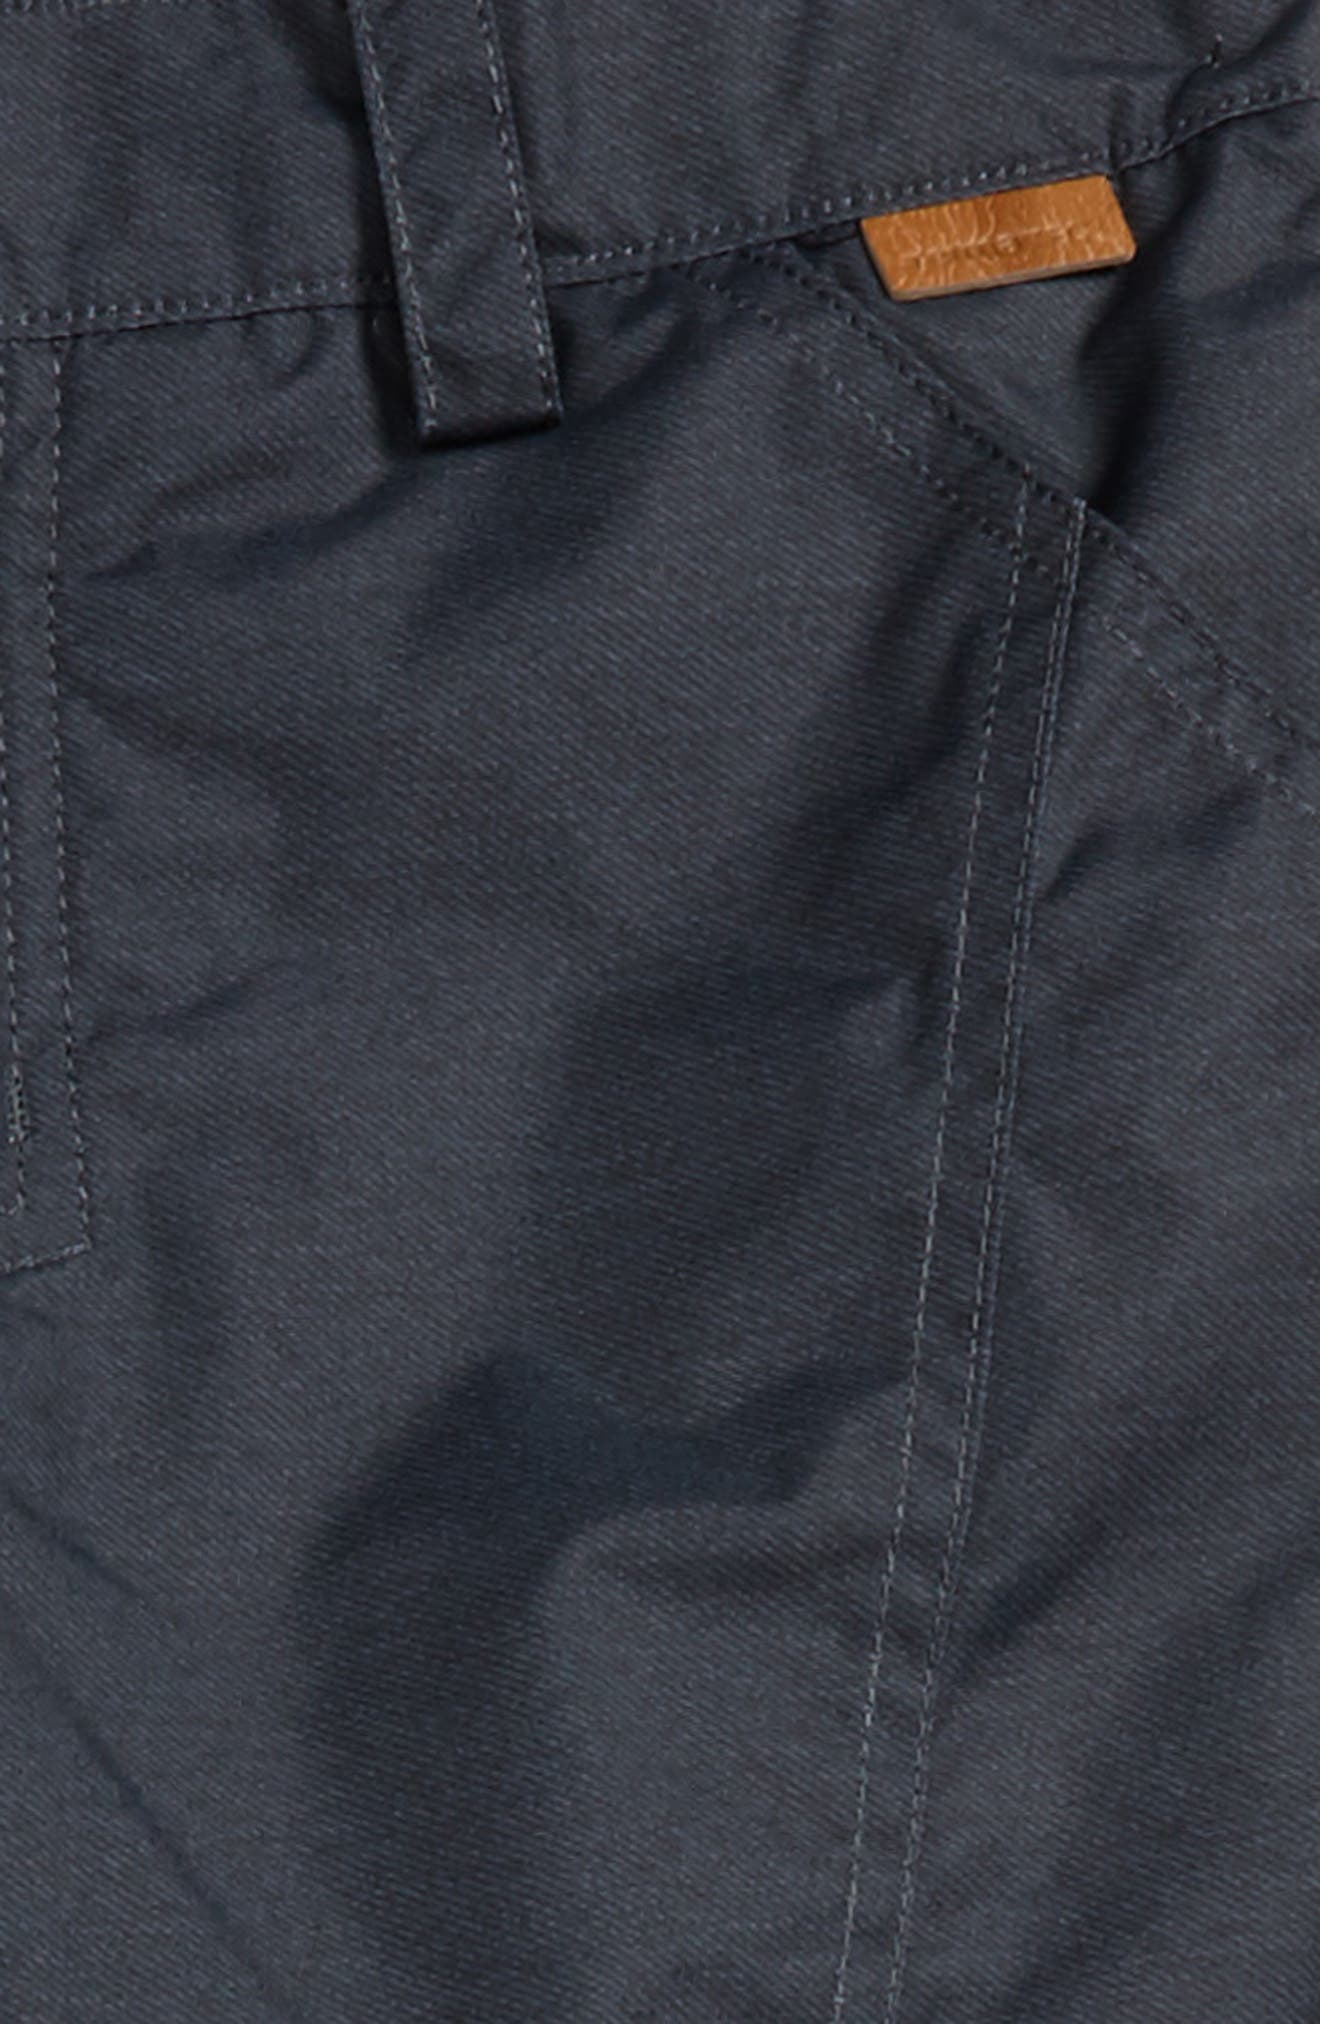 Alternate Image 2  - Reima Reimatec® Waterproof Pants (Big Boys)